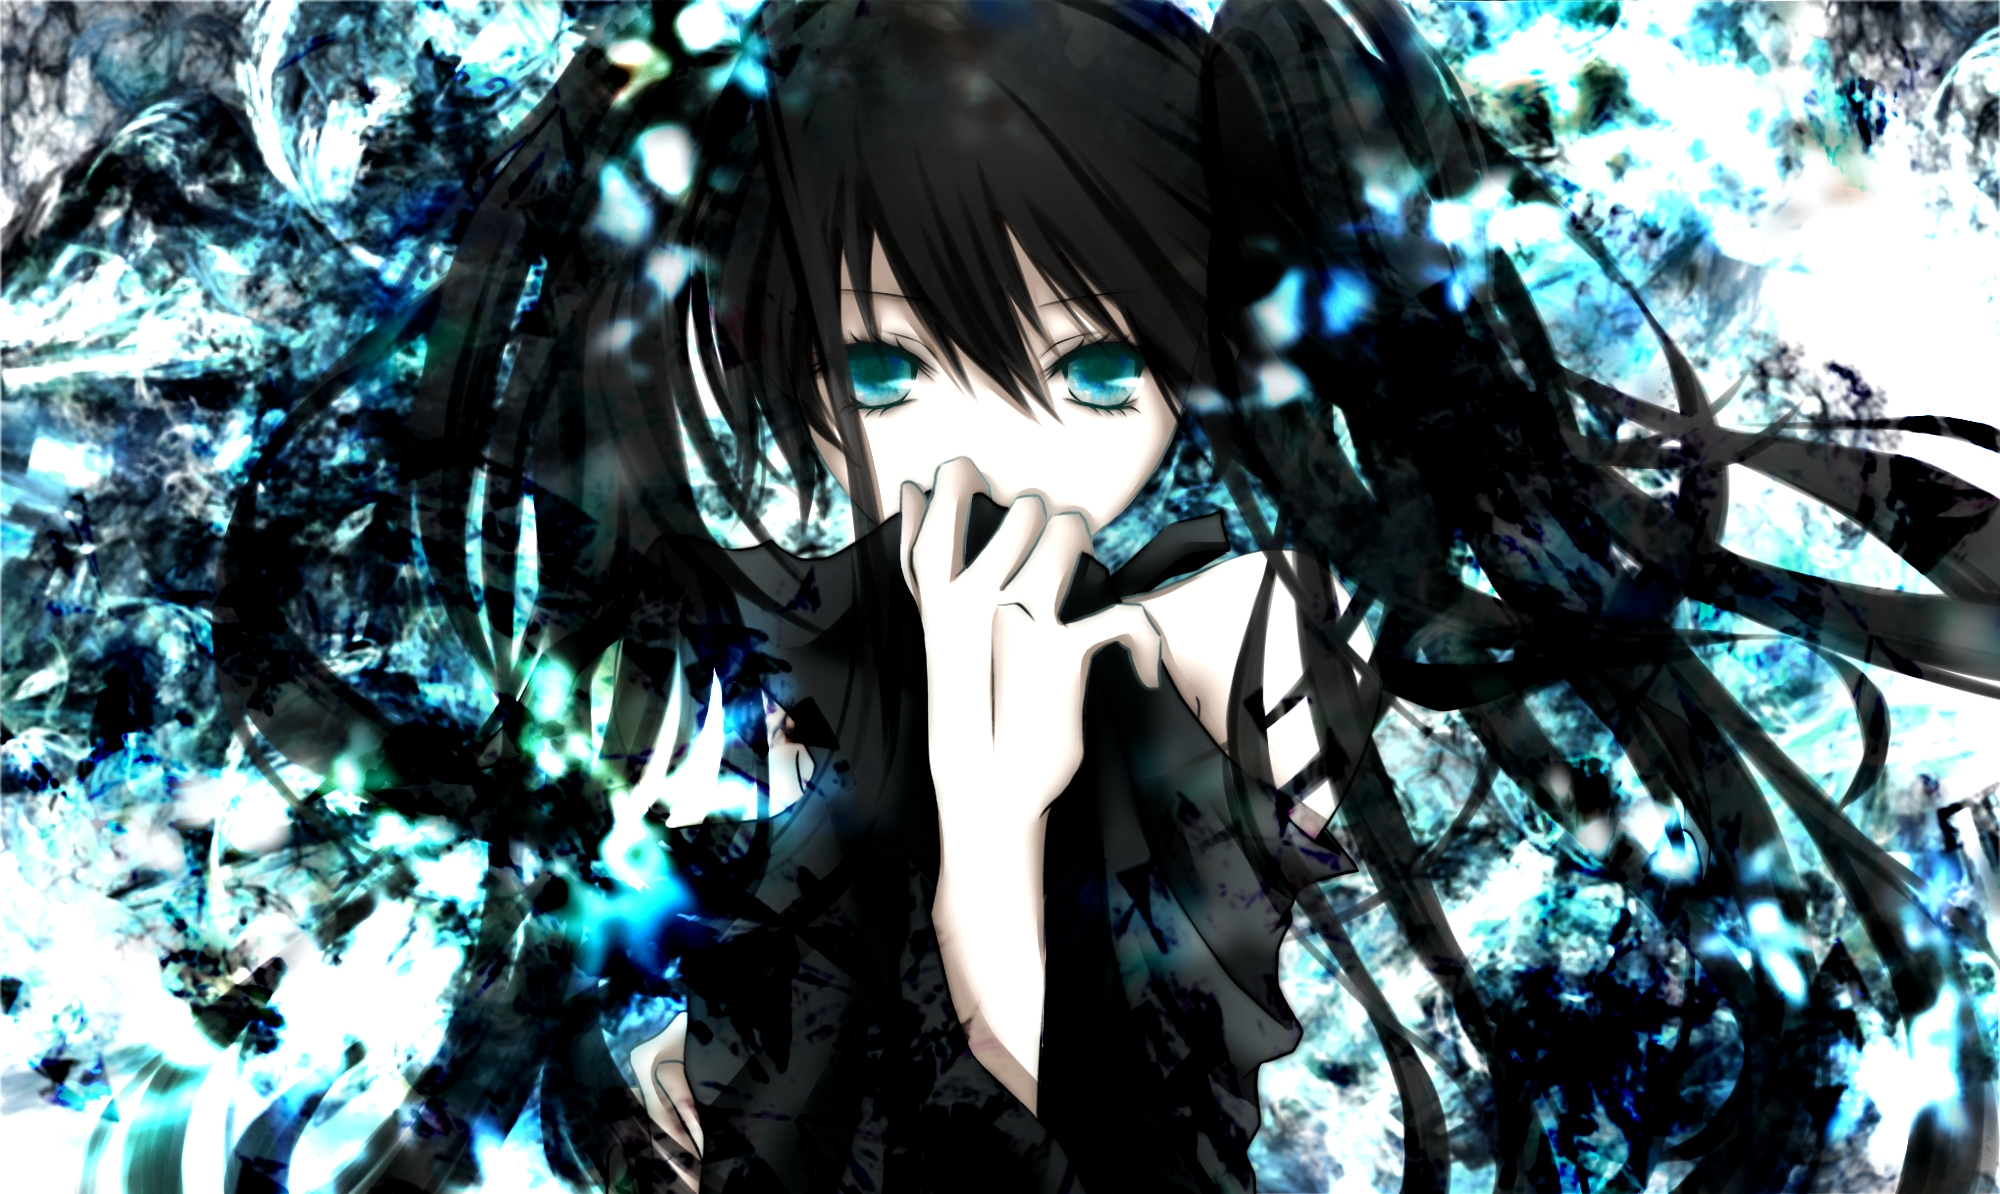 Black rock shooter full hd wallpaper and background image - Blue anime wallpaper ...